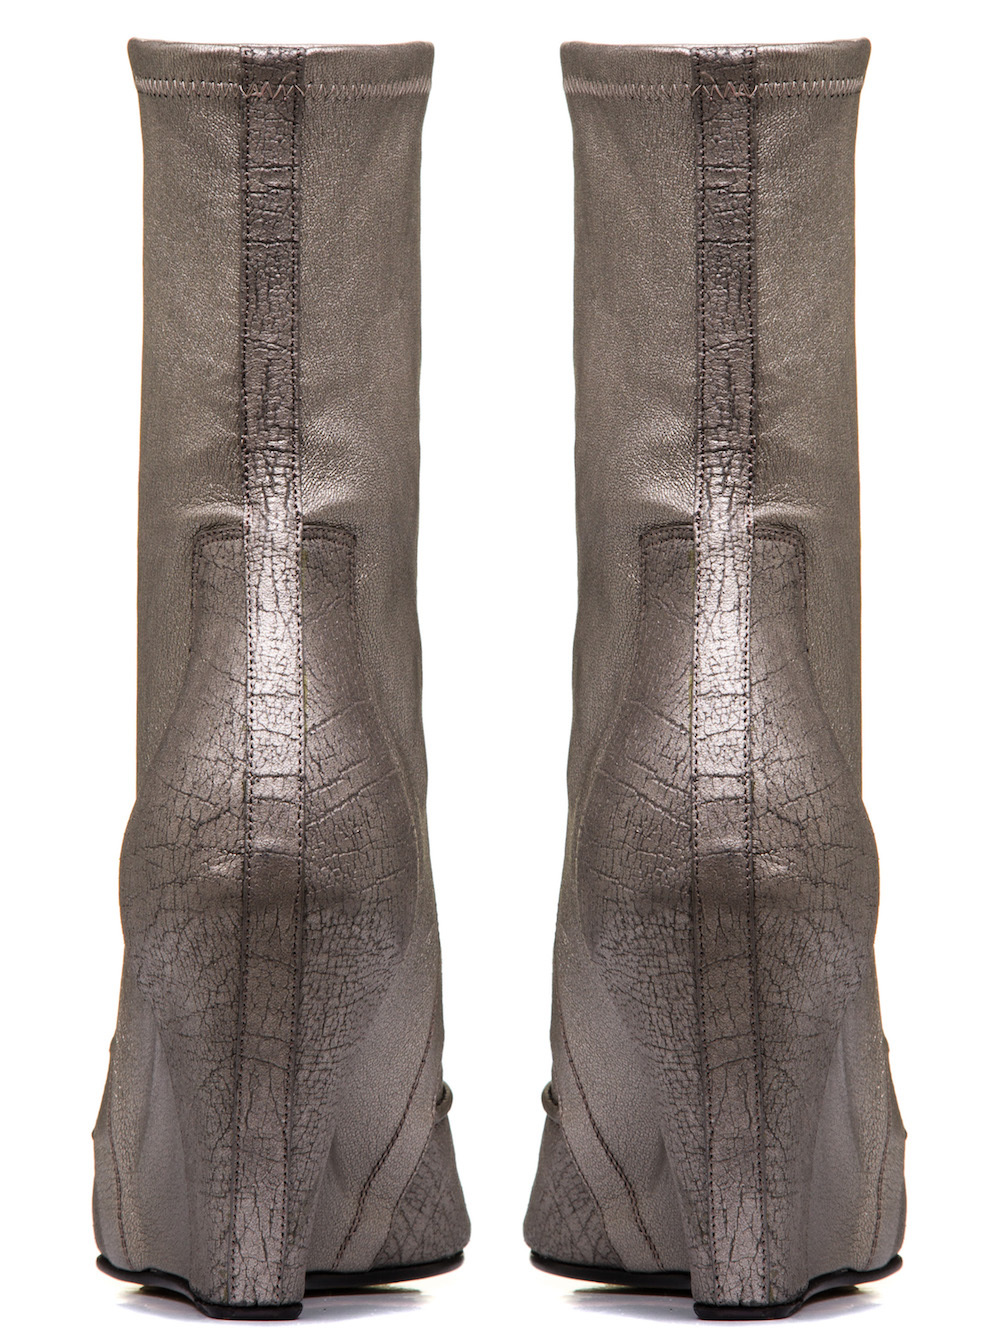 RICK OWENS RUHLMANN SOCK WEDGES IN SILVER